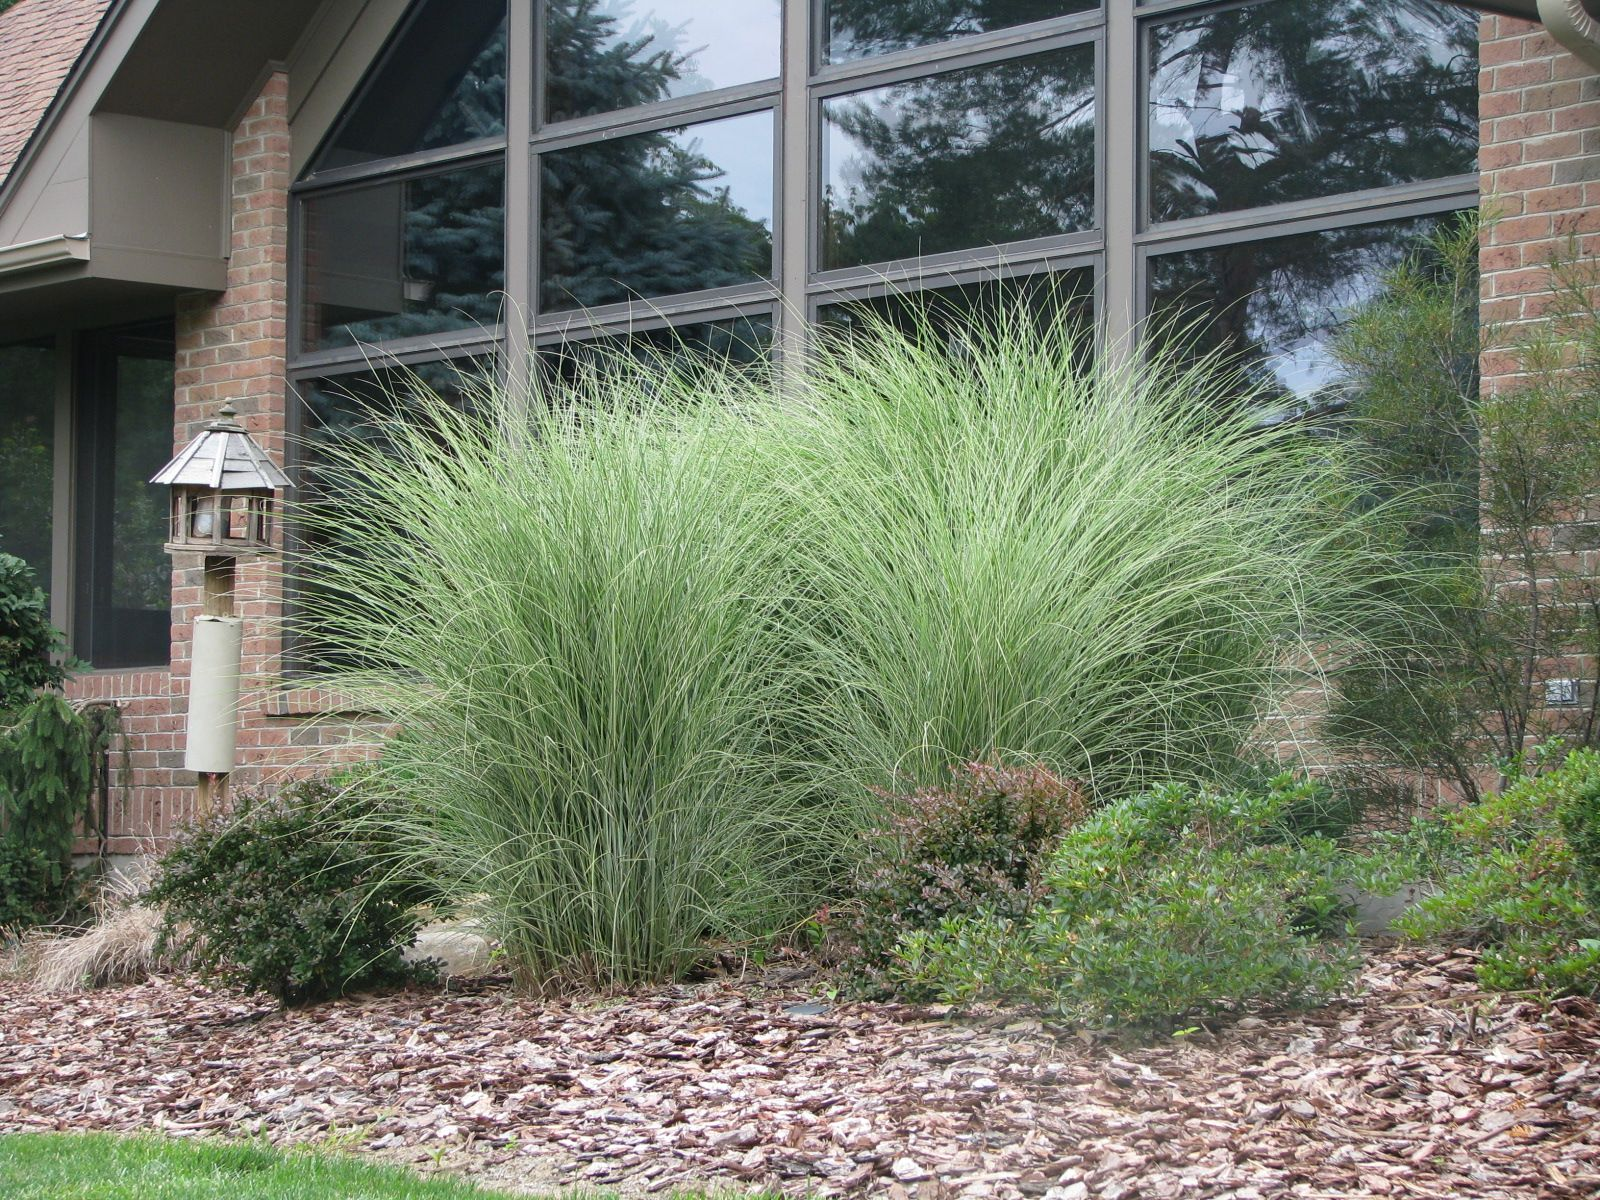 Grass random ornamental grass photos the alternative - Garden design using grasses ...